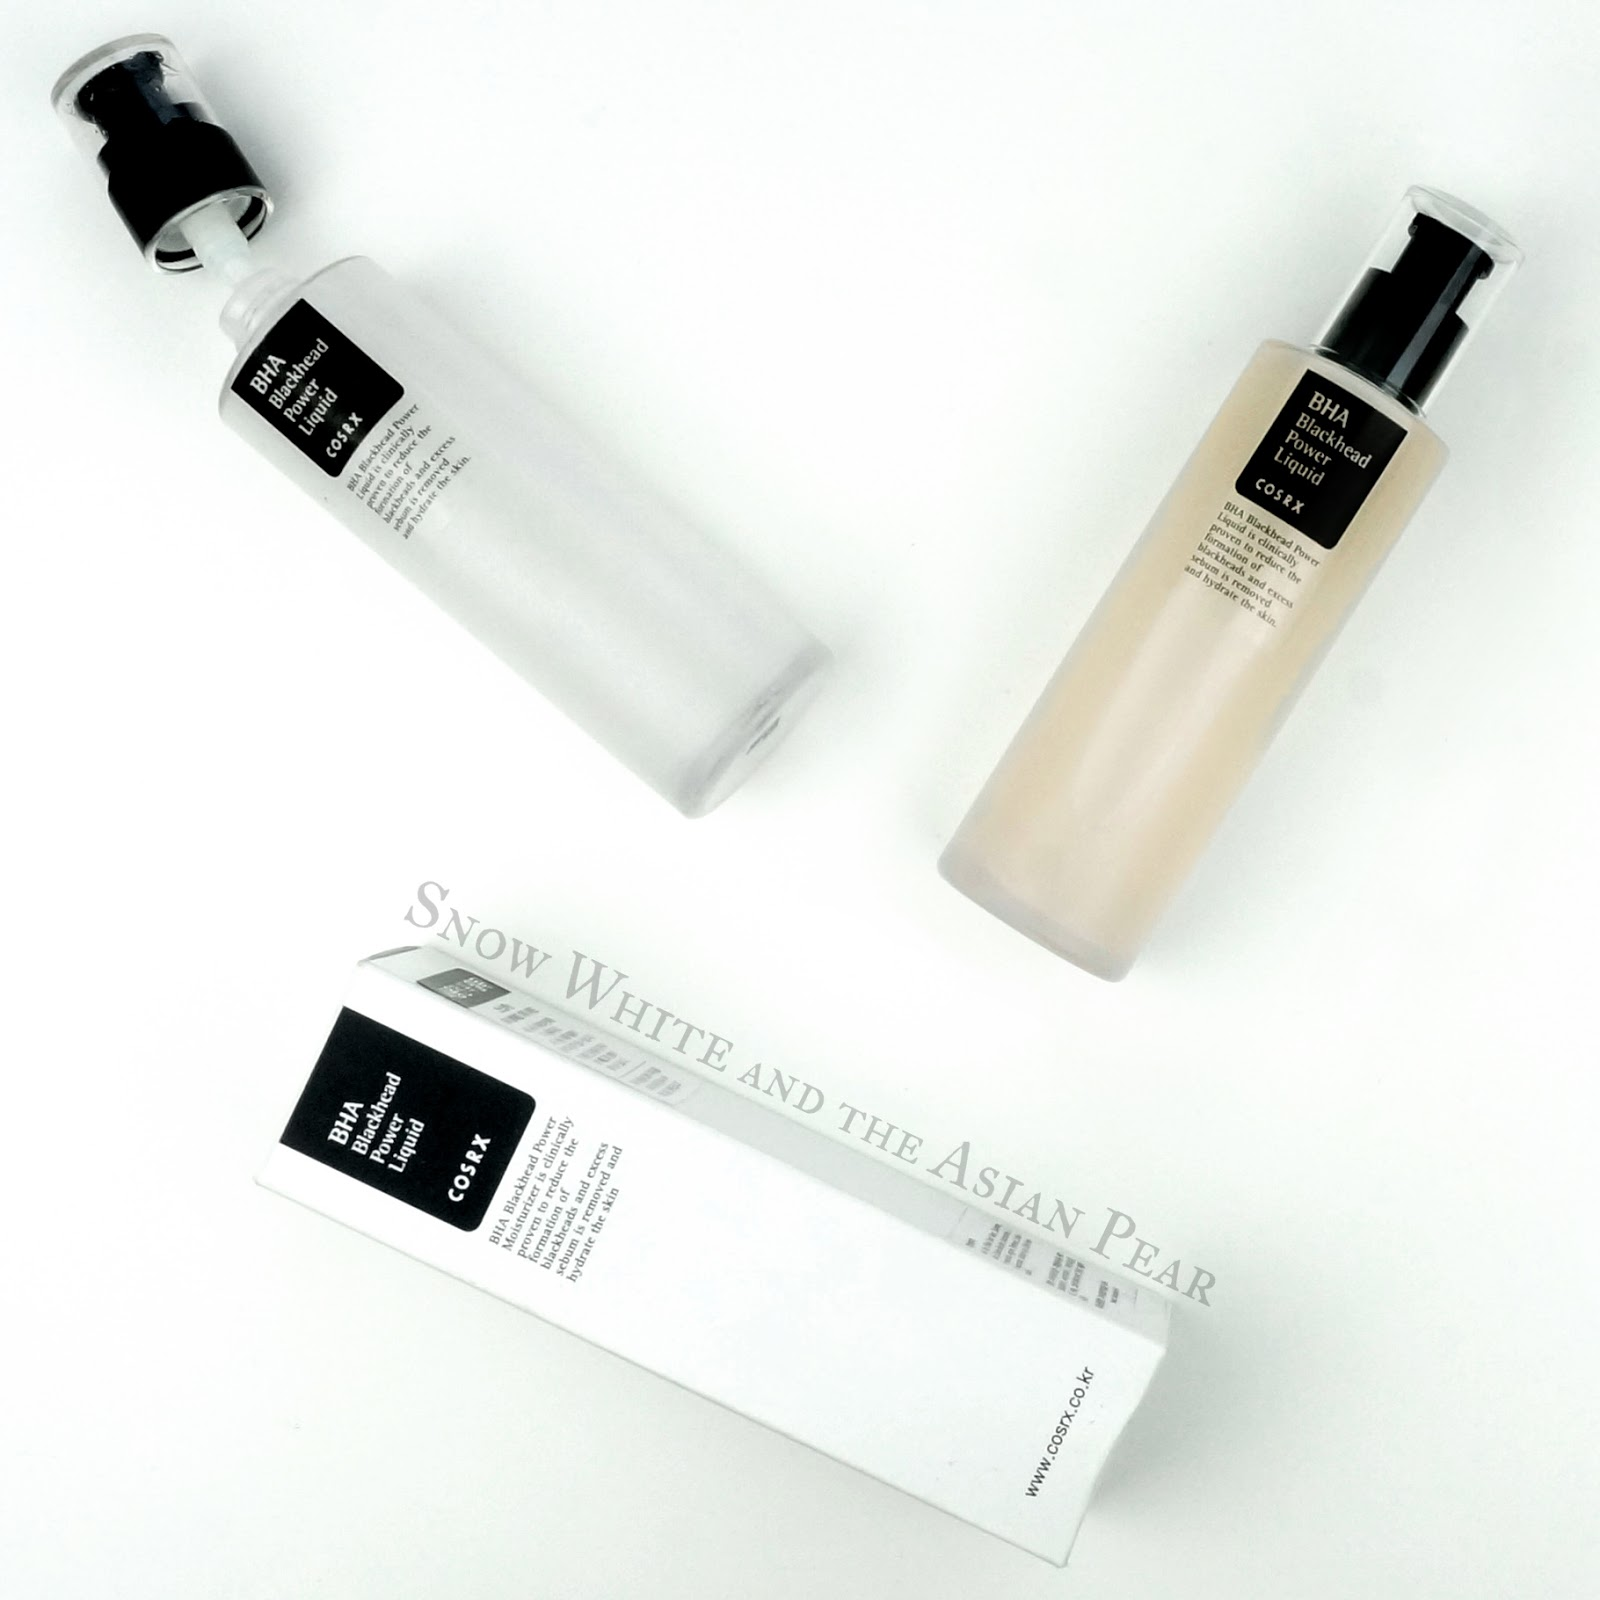 Cosrx BHA Power Liquid Exfoliant Review & My Descent Into BHA